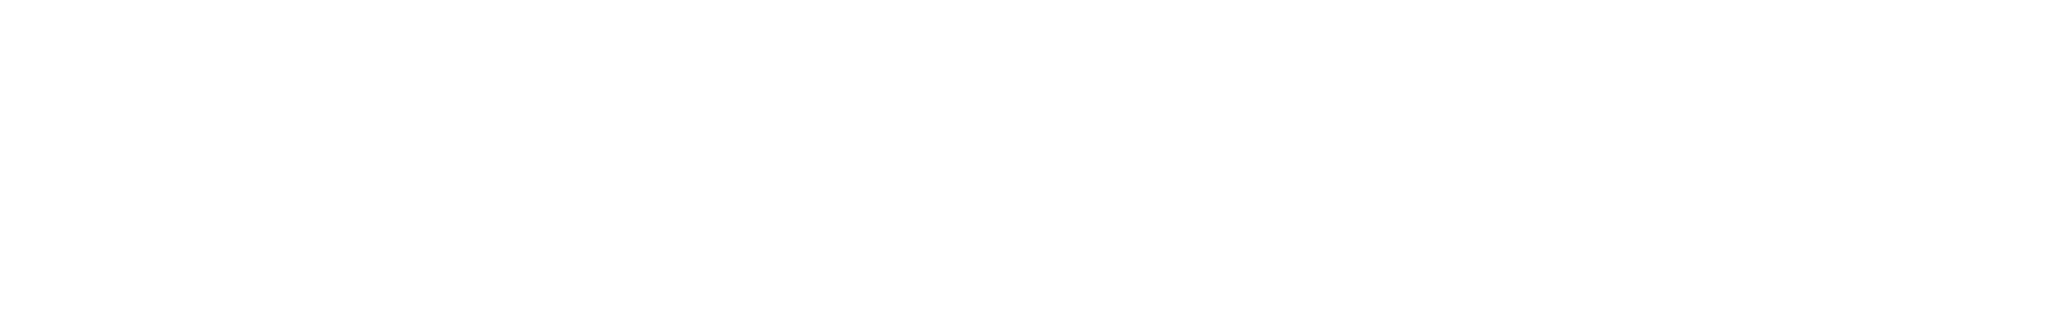 United Way of Northern Cameron County